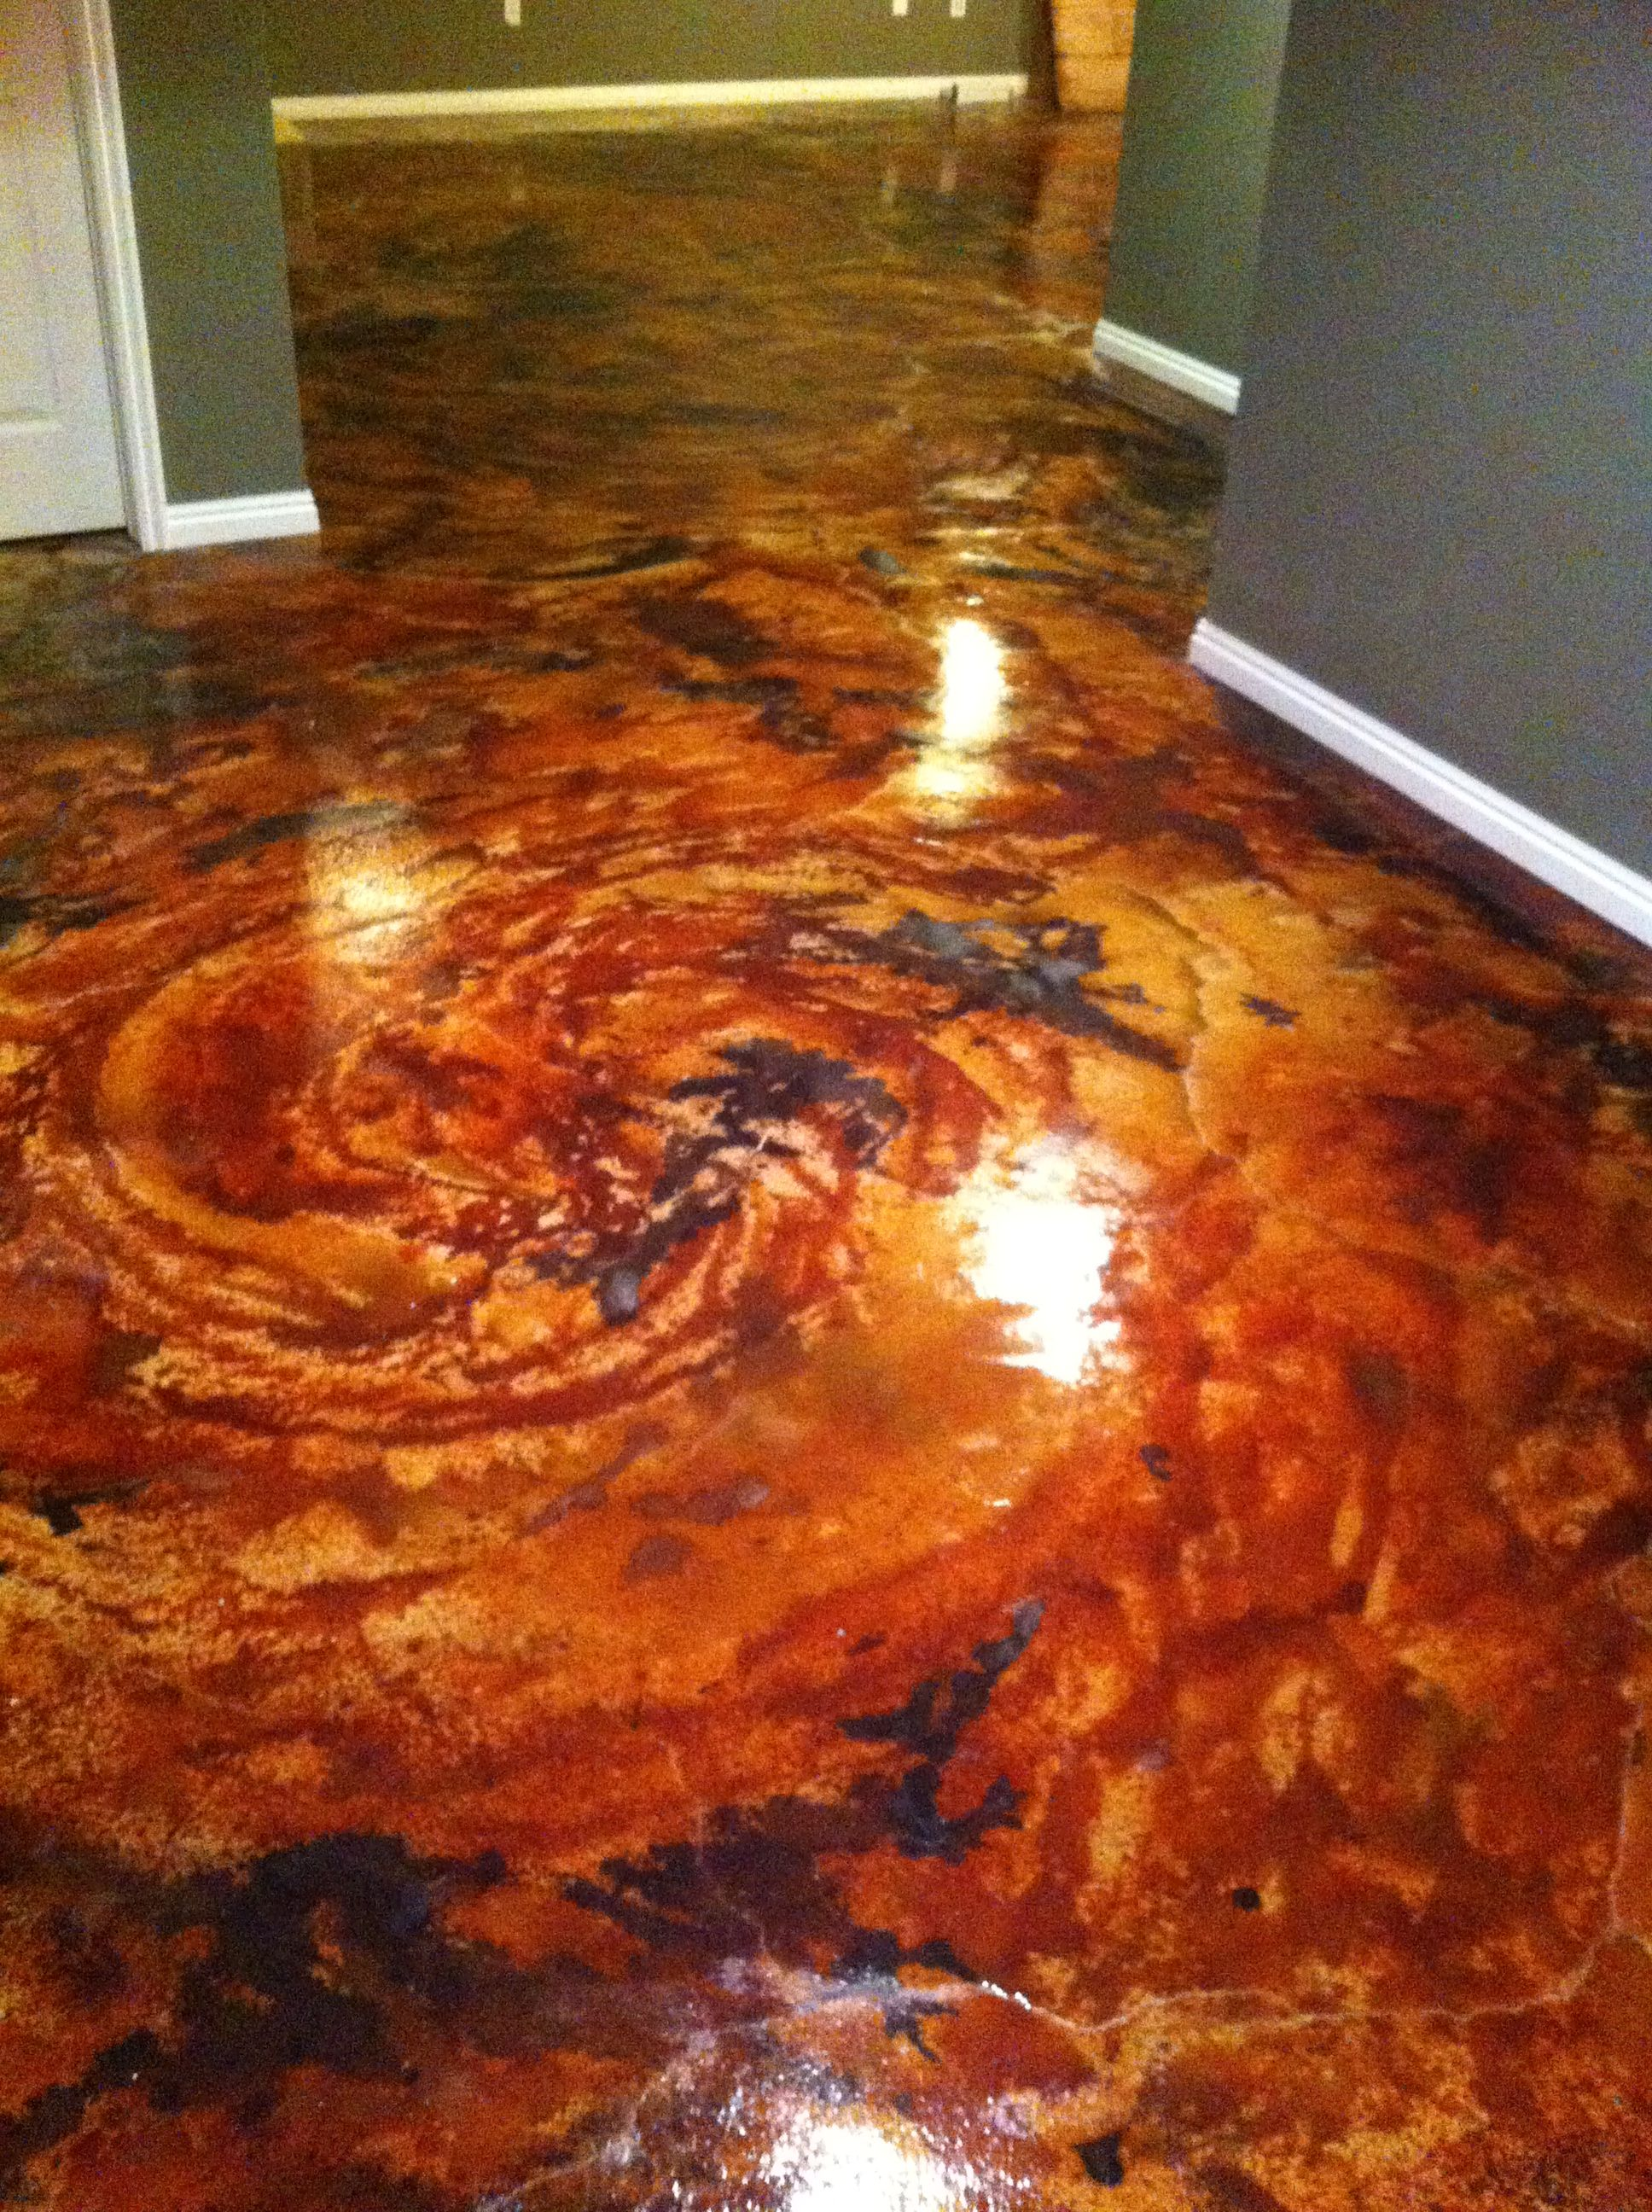 An Amazing Artistic Home Concrete Floor English Red Coffee Brown And Shifting Sands With Sprayable Satin Finish